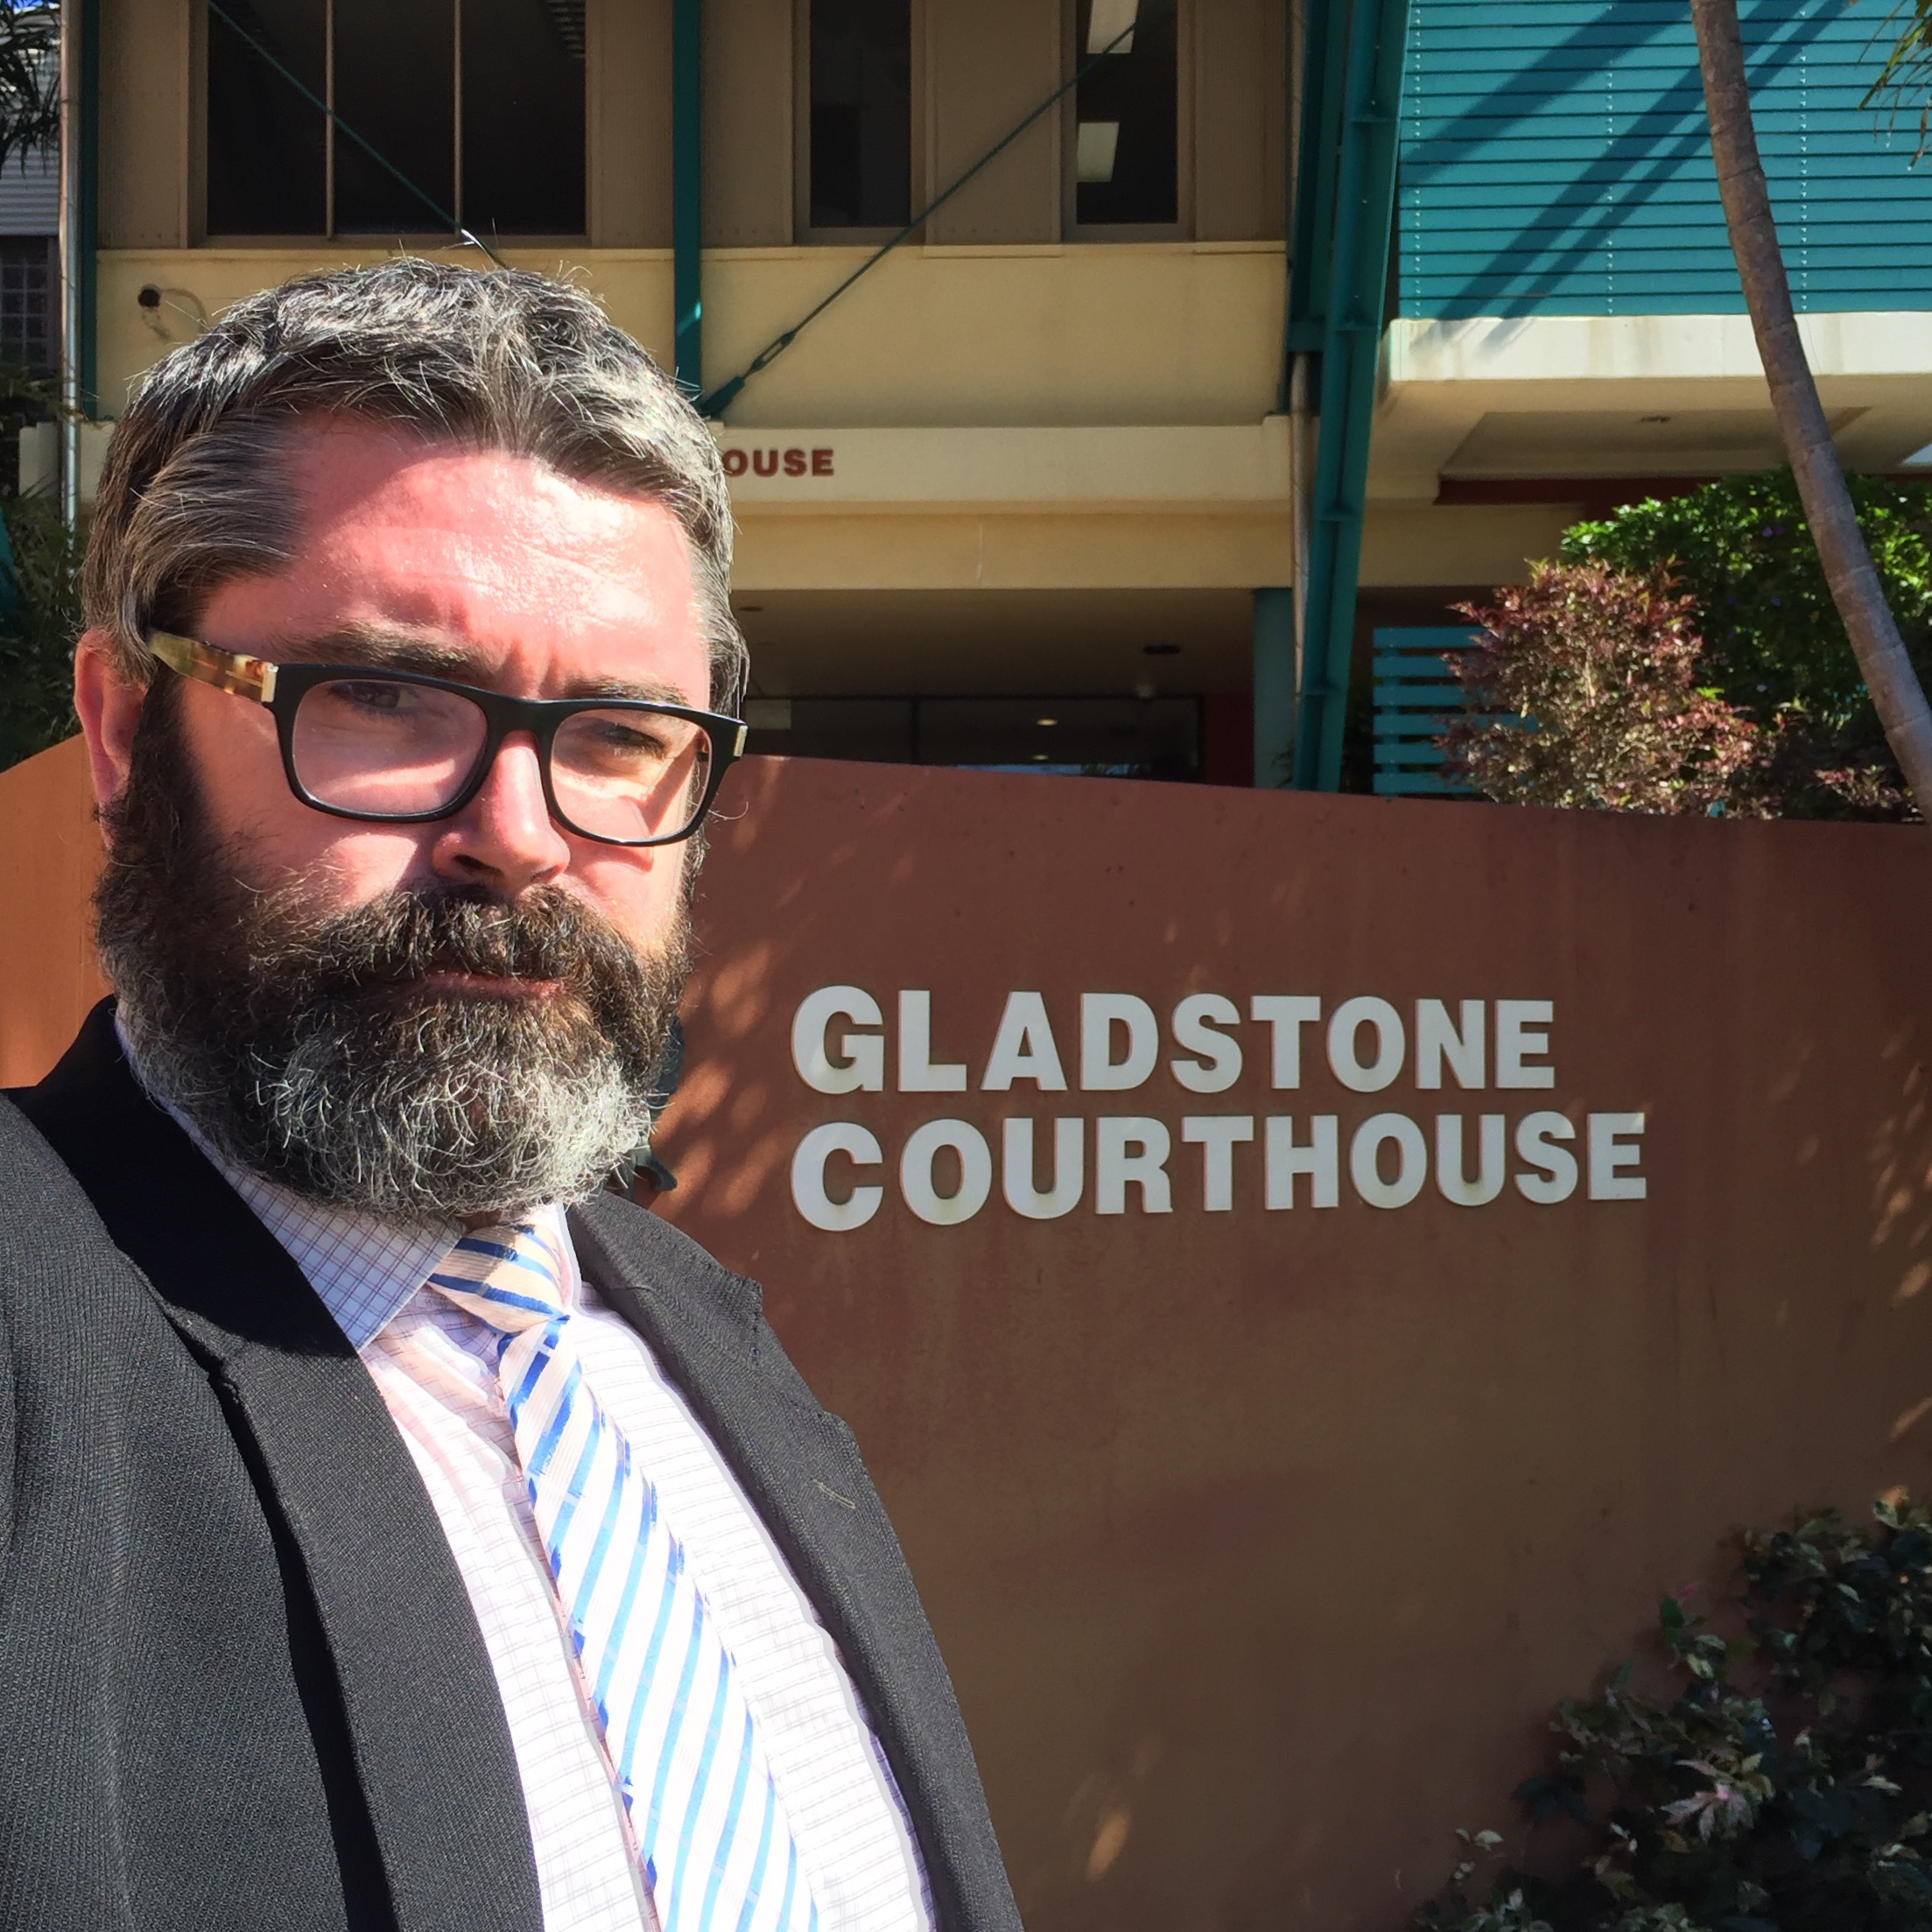 Gladstone DUI Drink Driving Drug Driving Lawyer